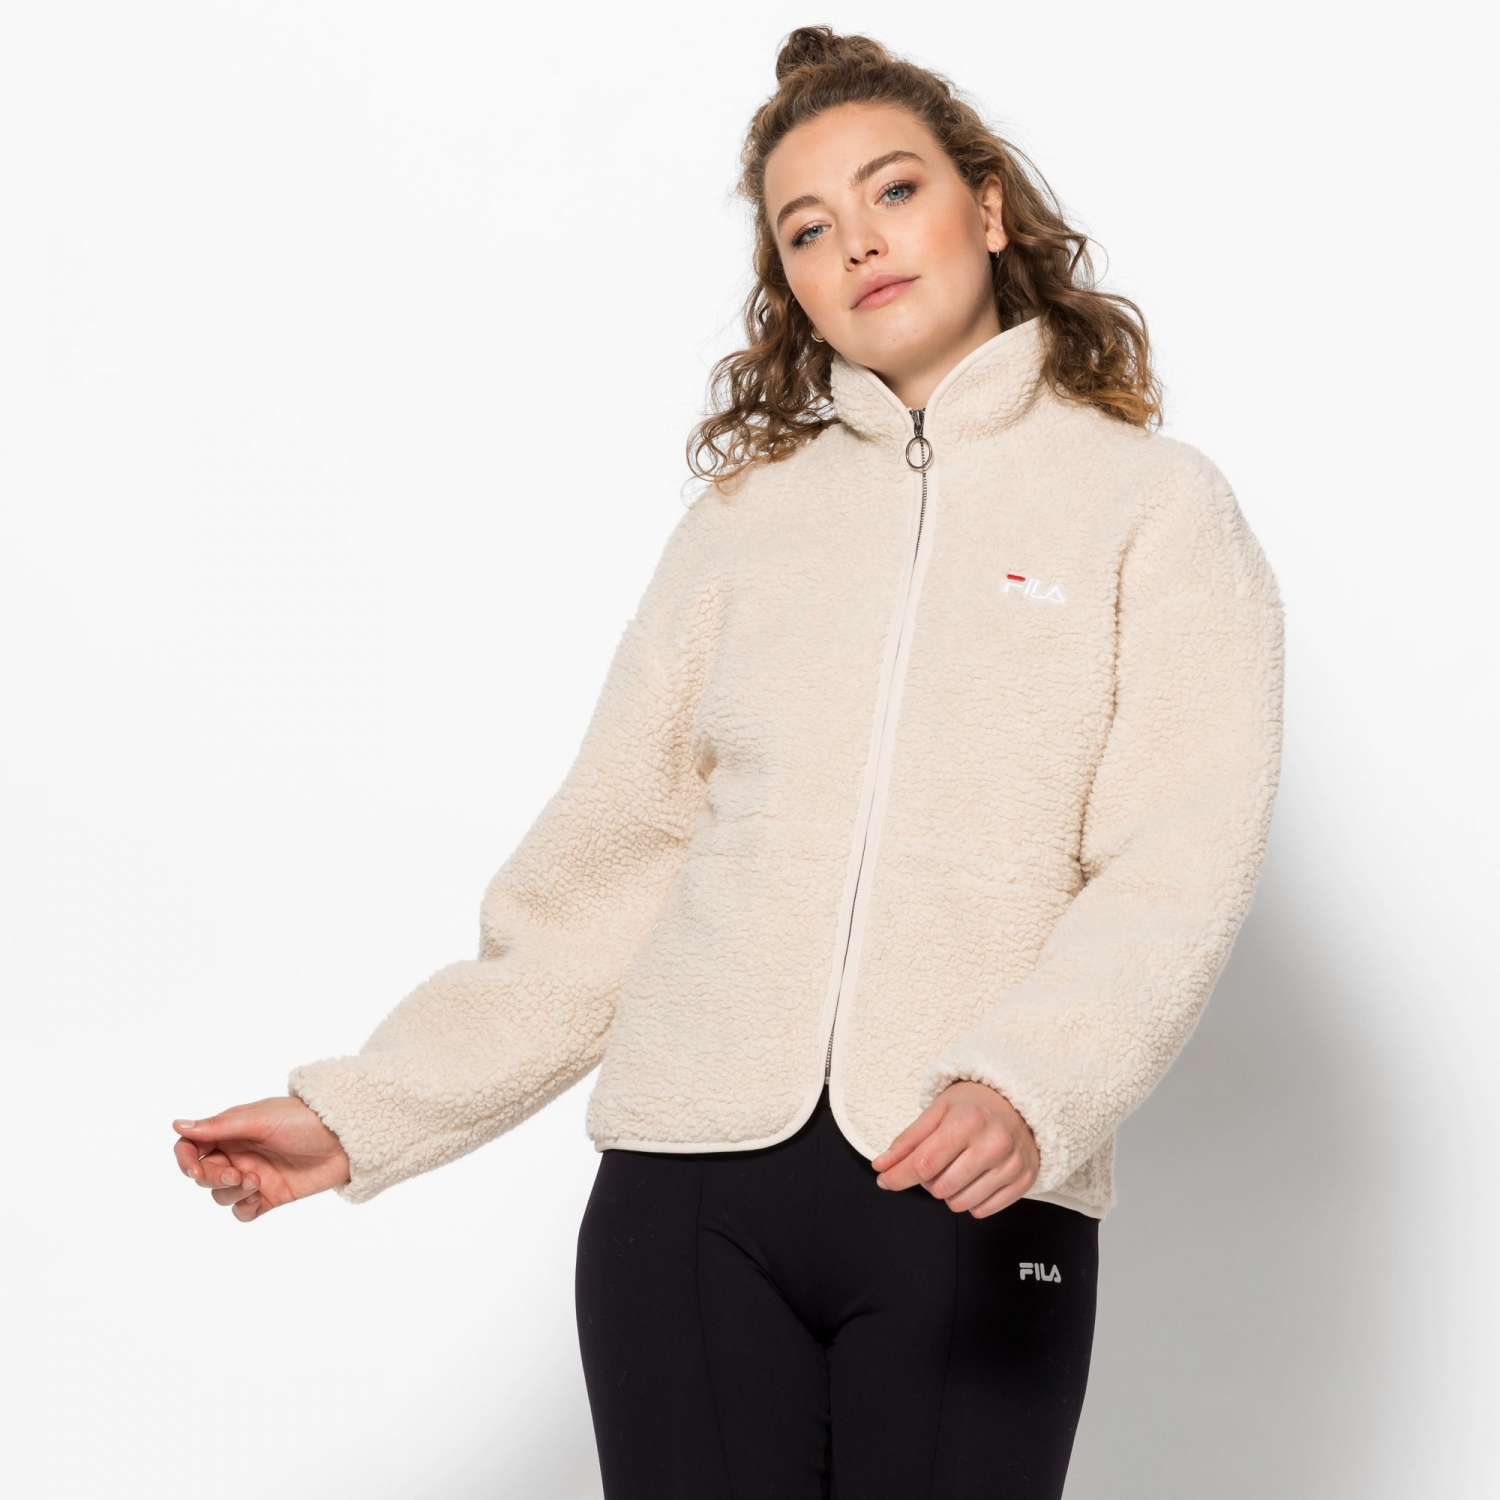 Fila Hajar Sherpa Fleece Jacket Bild 1